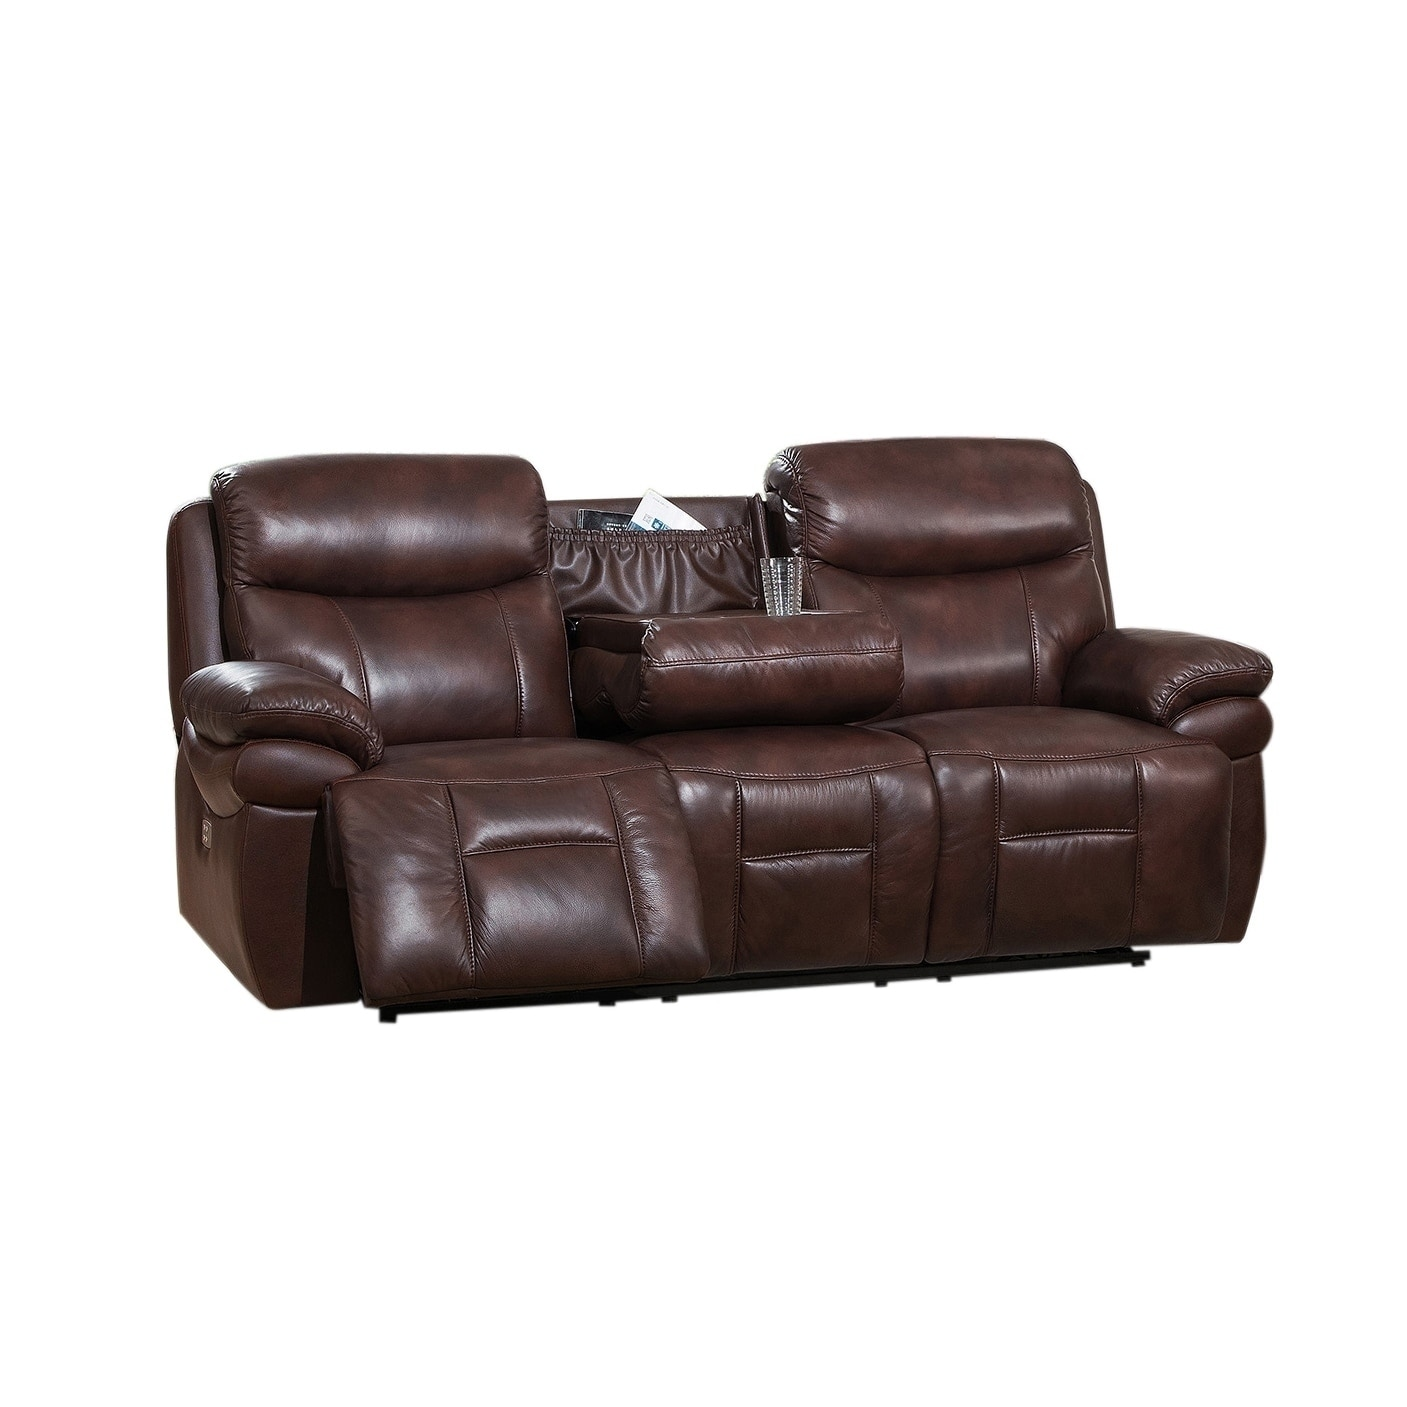 Sanford Leather Power Sofa Recliner with Power Headrests and USB Ports